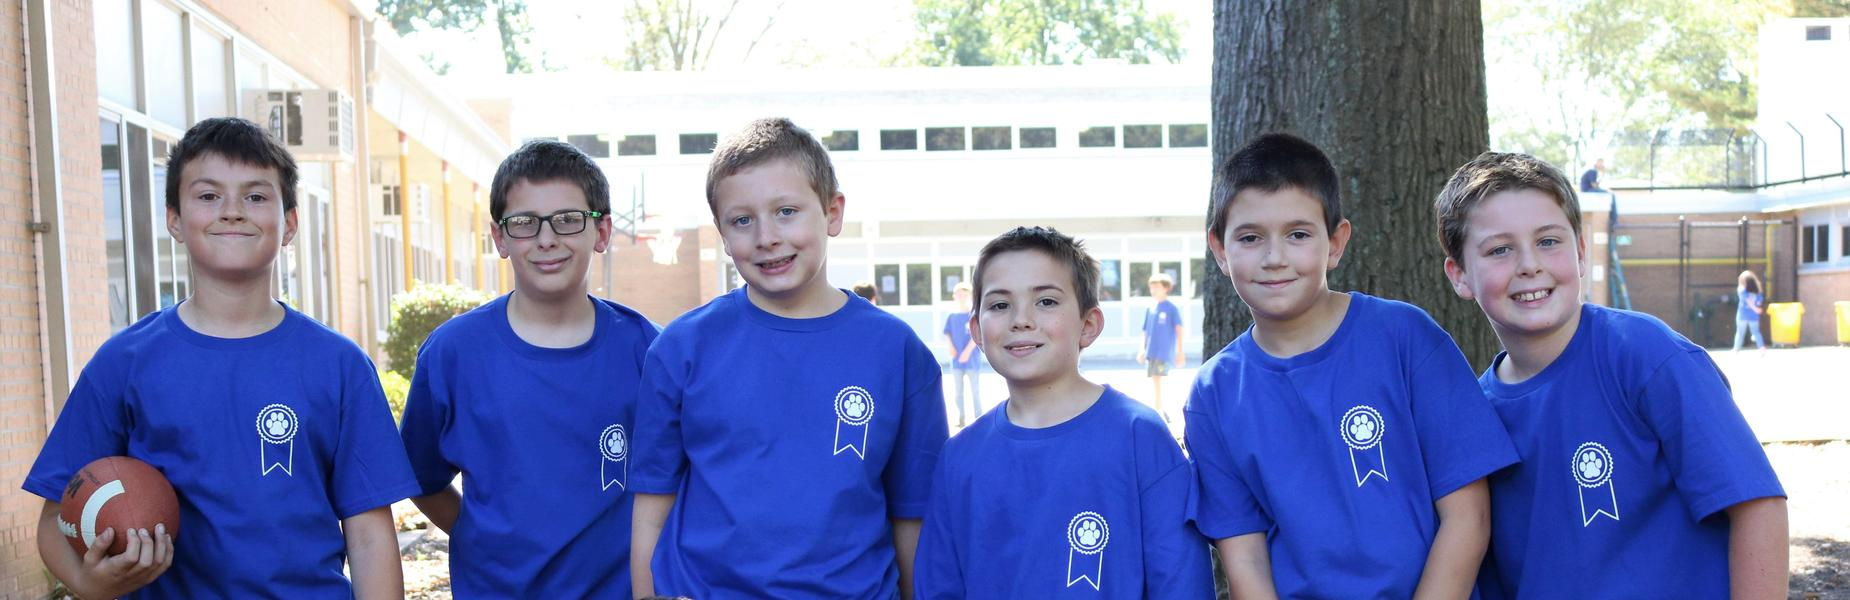 Photo of Washington students wearing National Blue Ribbon shirts.